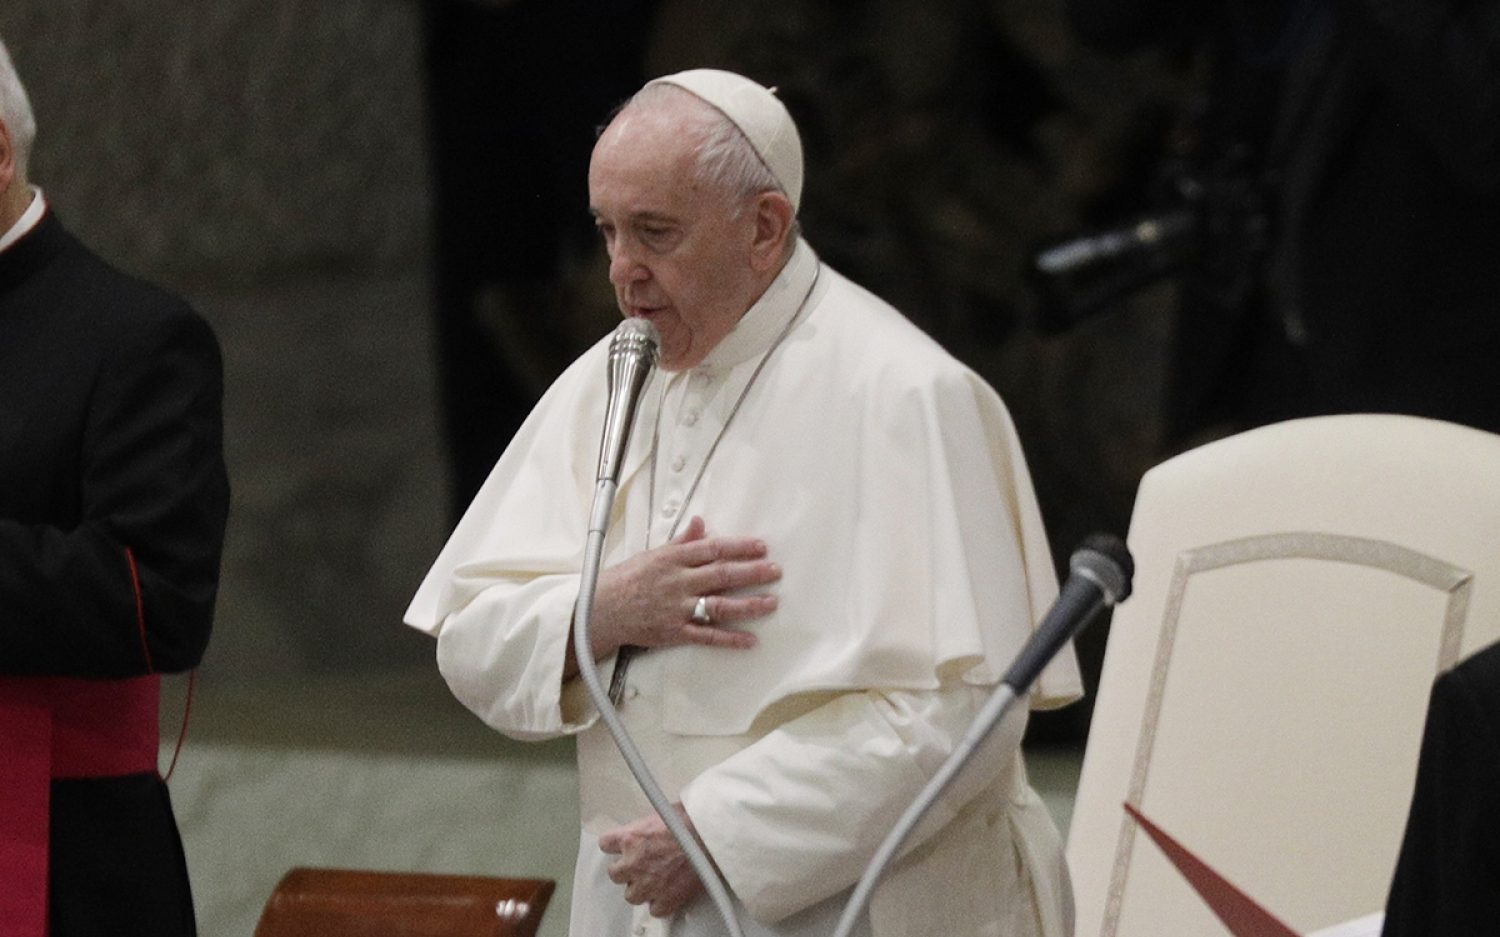 Pope reiterates support for civil unions